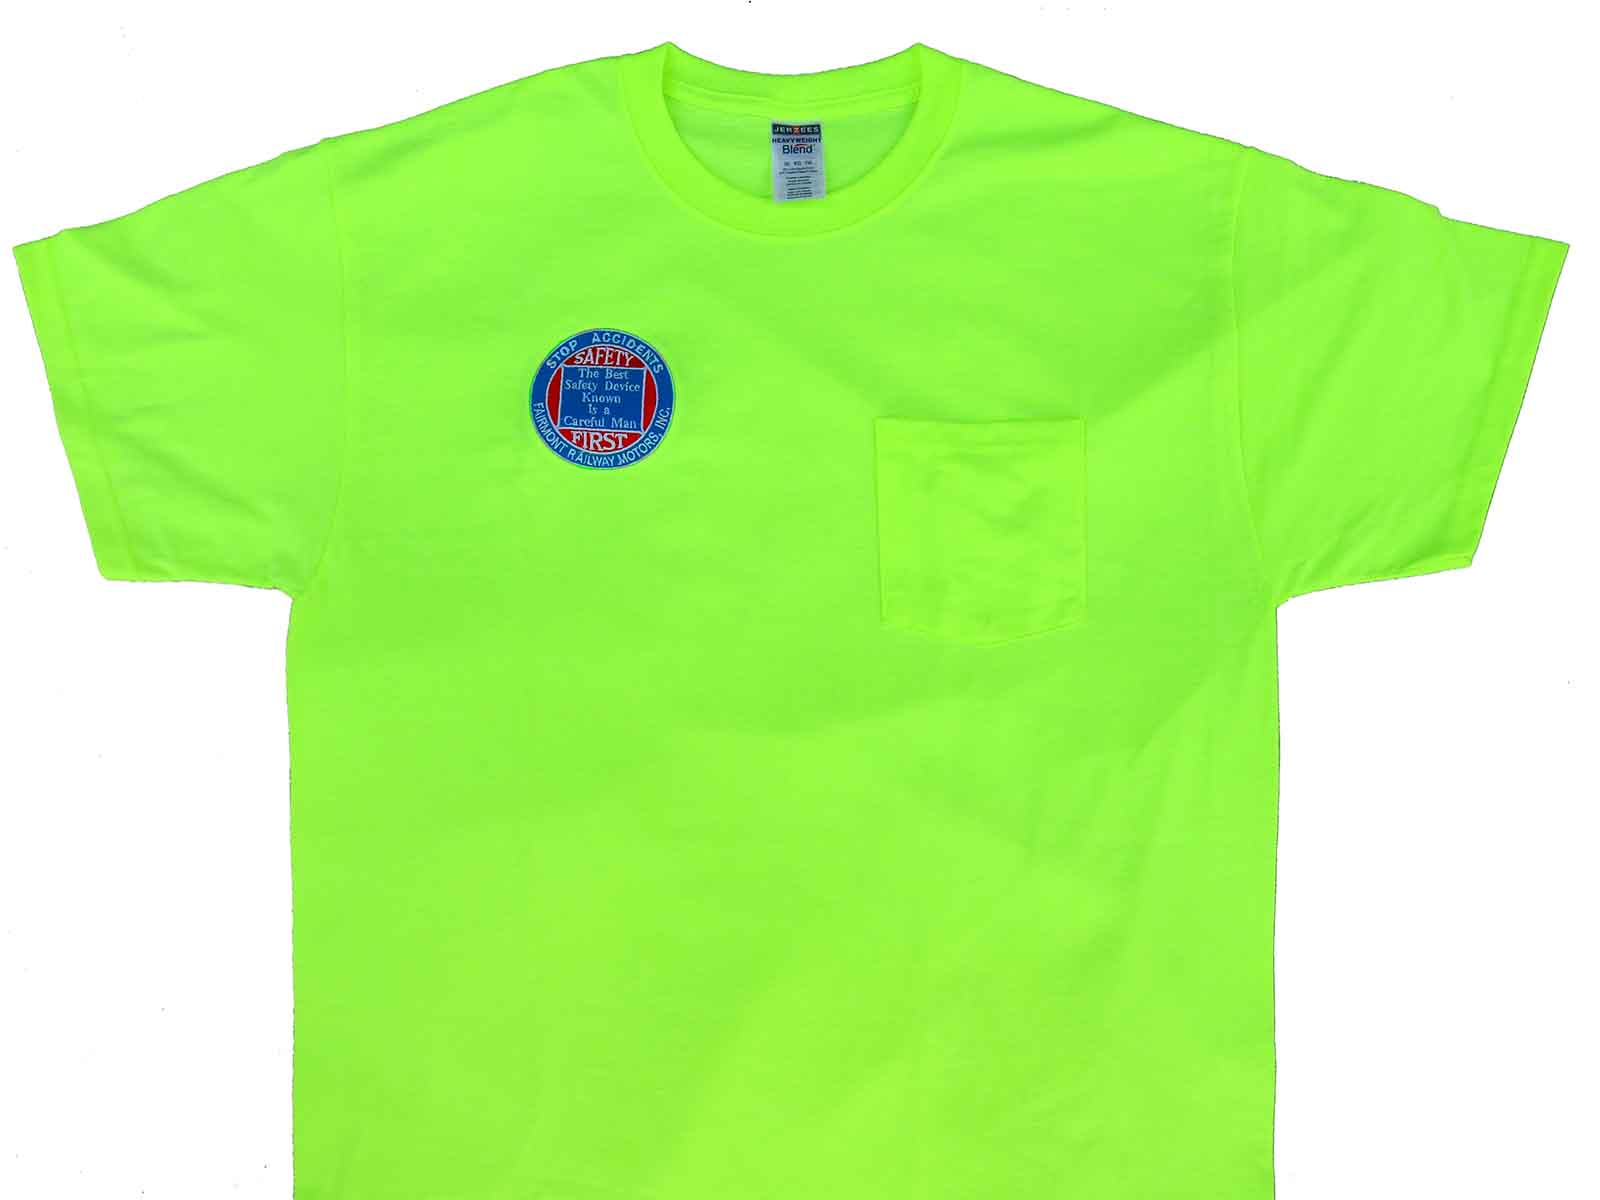 Shirt clipart neon shirt. Shirts and embroidery safety